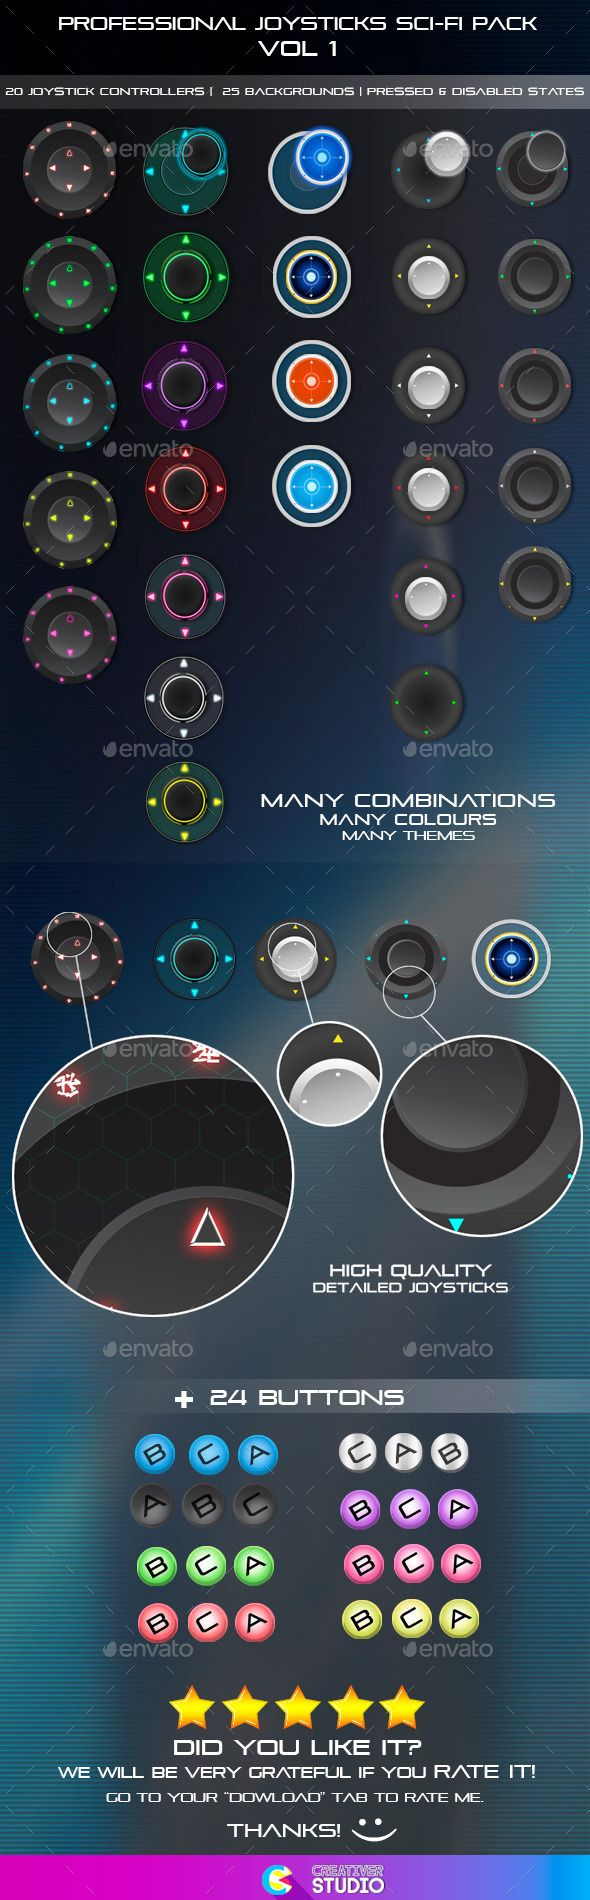 Professional Joysticks Sci-Fi Pack Vol 1 - User Interfaces Game Assets